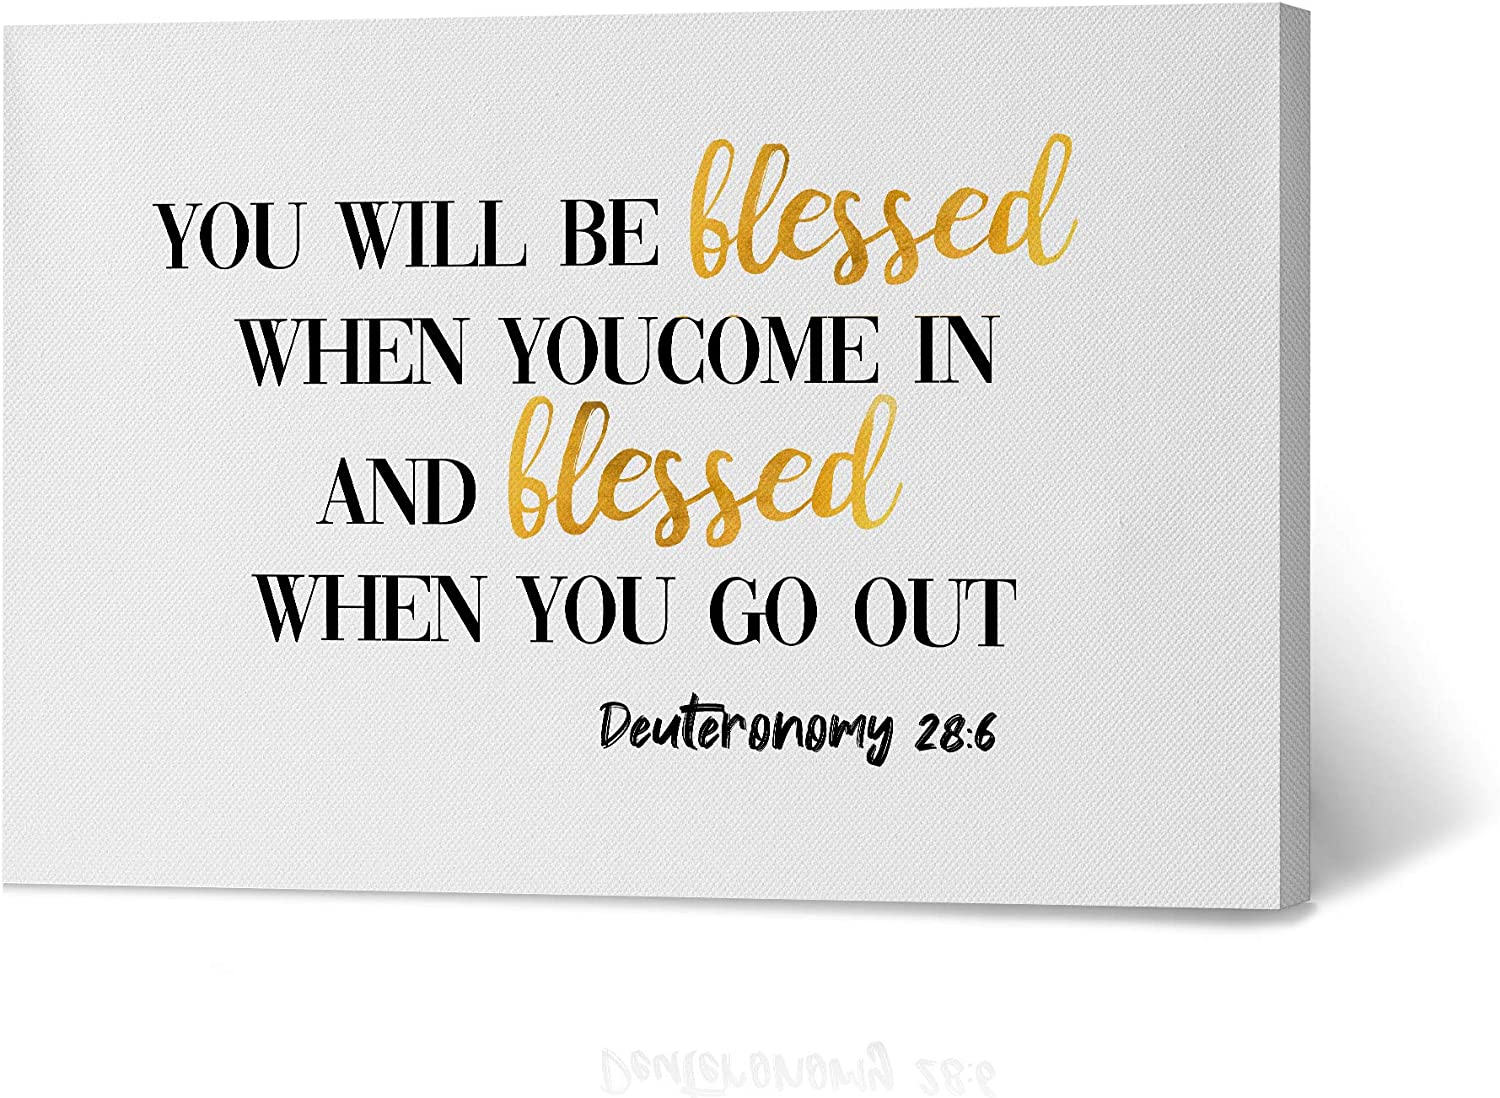 HB Art Design You Will be Blessed When You Come in Blessed When You go Out Deuteronomy 28:6 Bible Verse Scripture Quote Inspirational Christian Wall Art Canvas Print Decor Ready to Hang 8x12